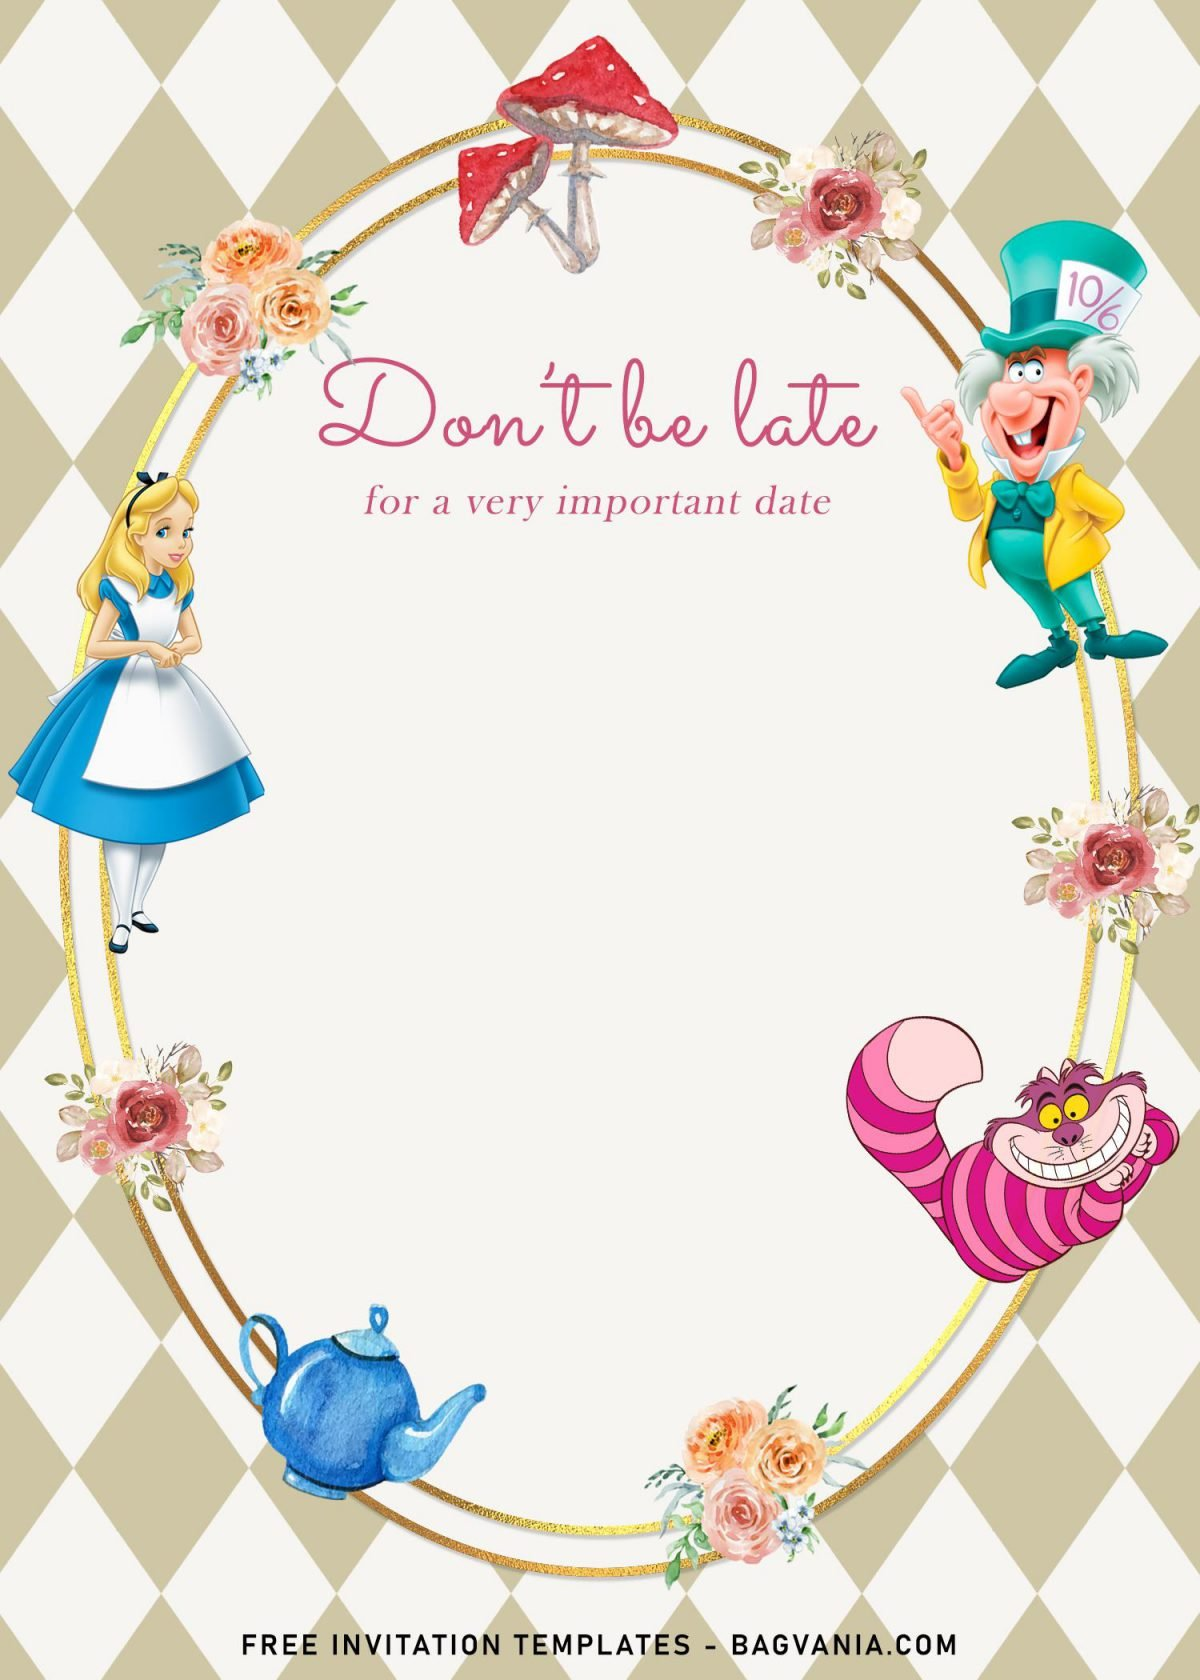 8+ Vintage Alice In Wonderland Birthday Invitation Templates and has Cheshire cat